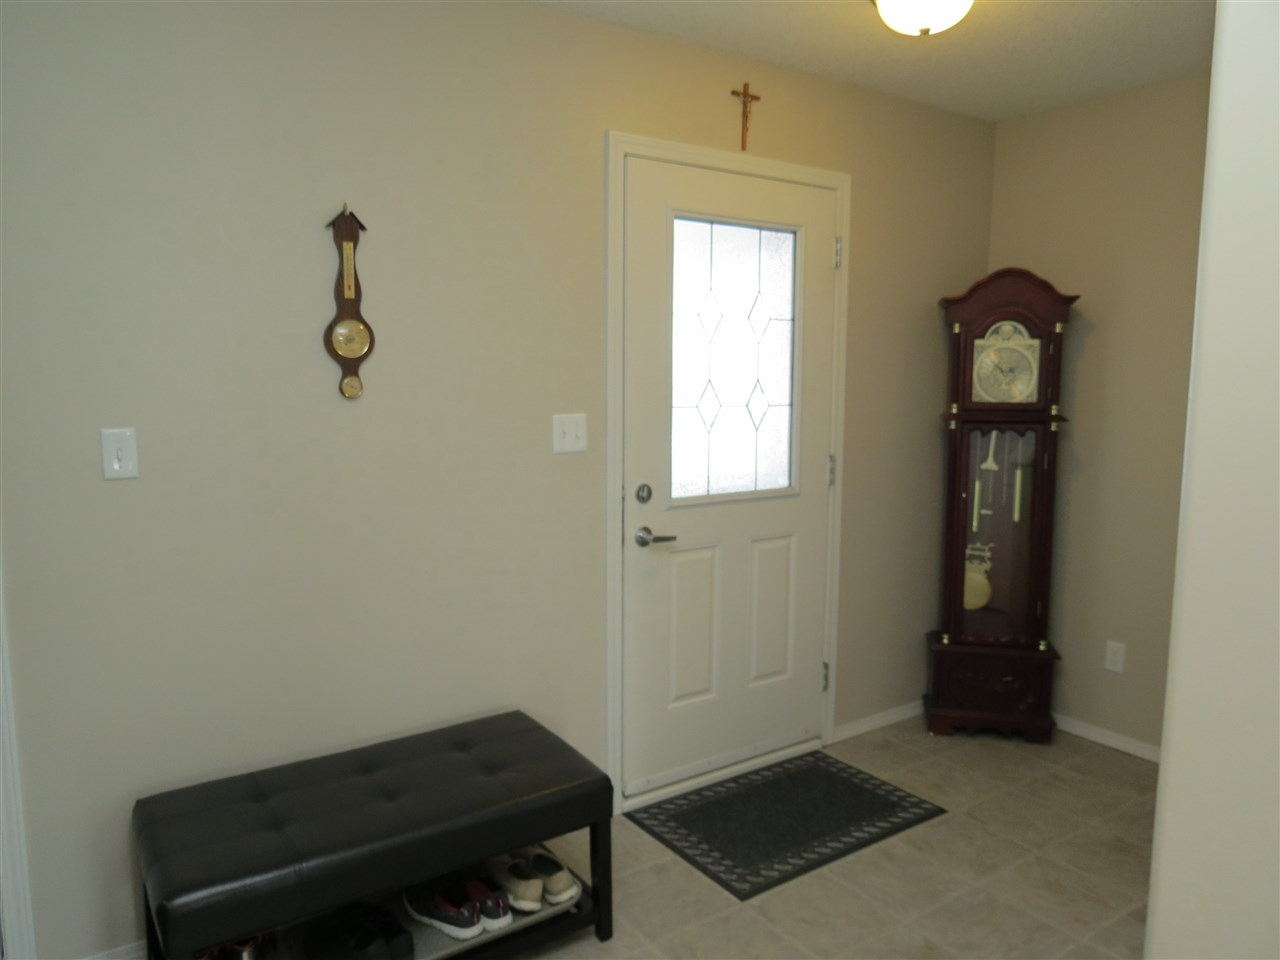 Photo 3: 9429 80 Avenue: Morinville House Half Duplex for sale : MLS(r) # E4059755